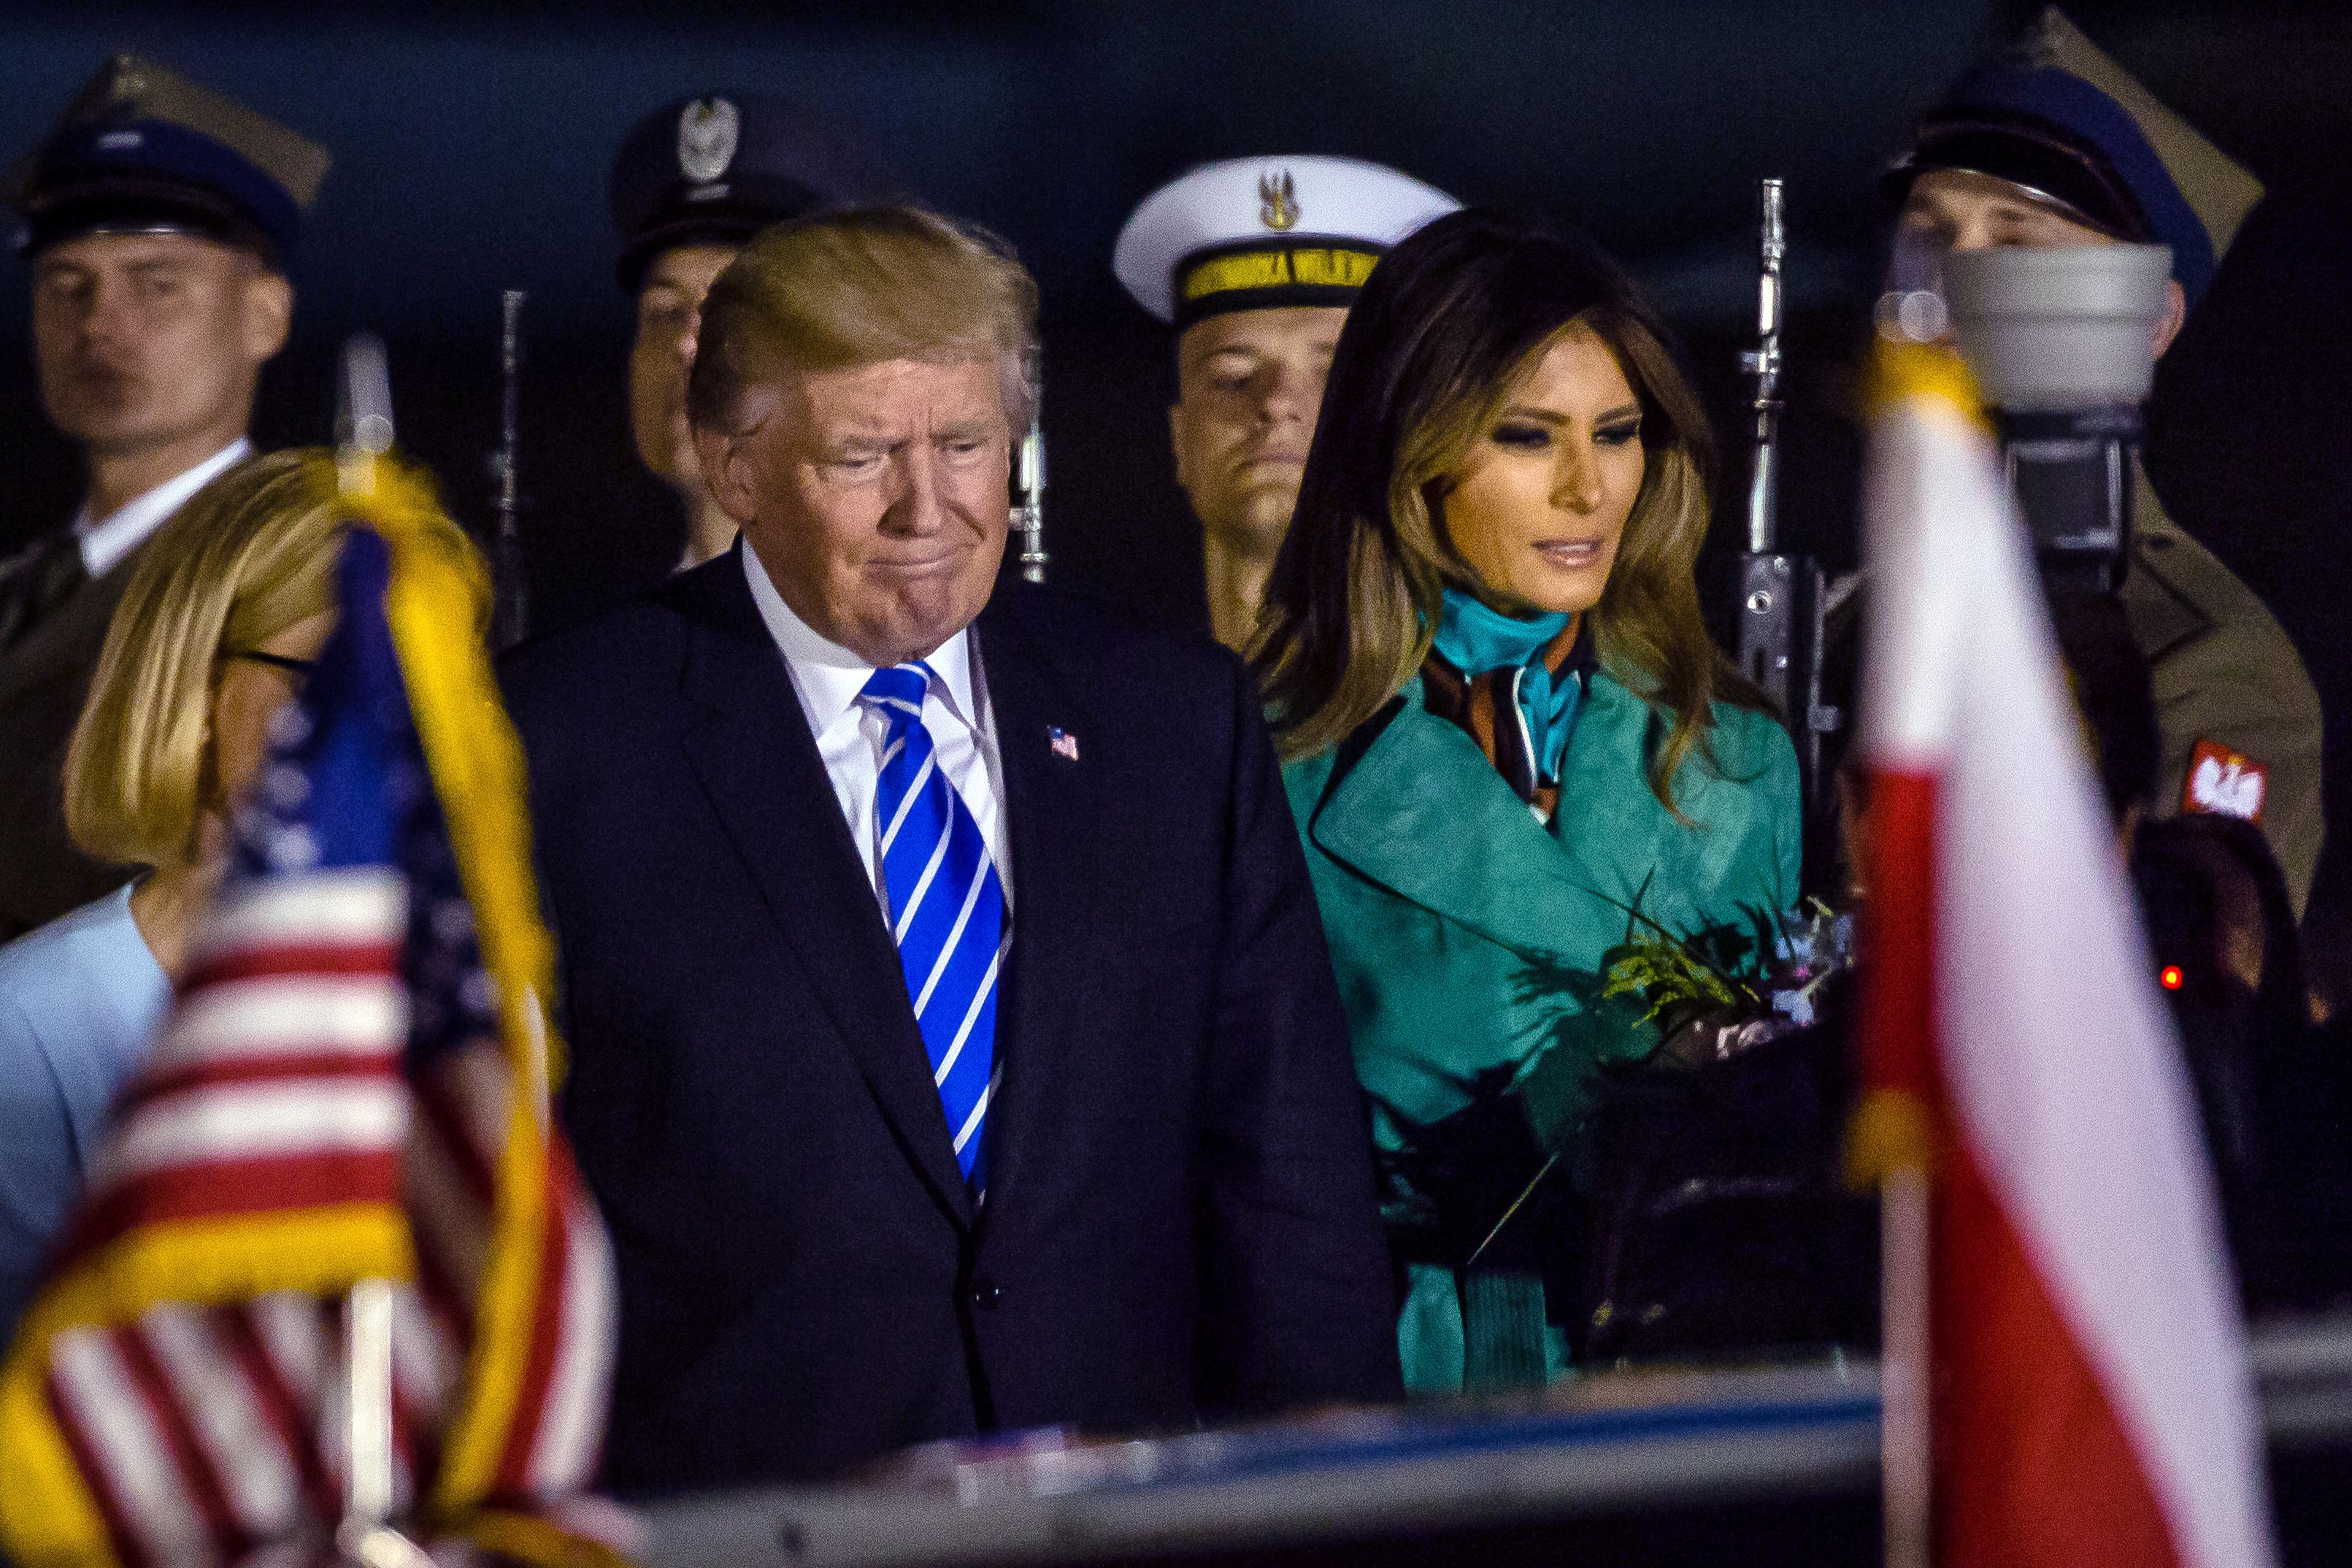 US President Donald Trump (L) and US First Lady Melania Trump (R) react after stepping off Air Force One upon their arrival at Chopin Airport in Warsaw,on July 5, 2017